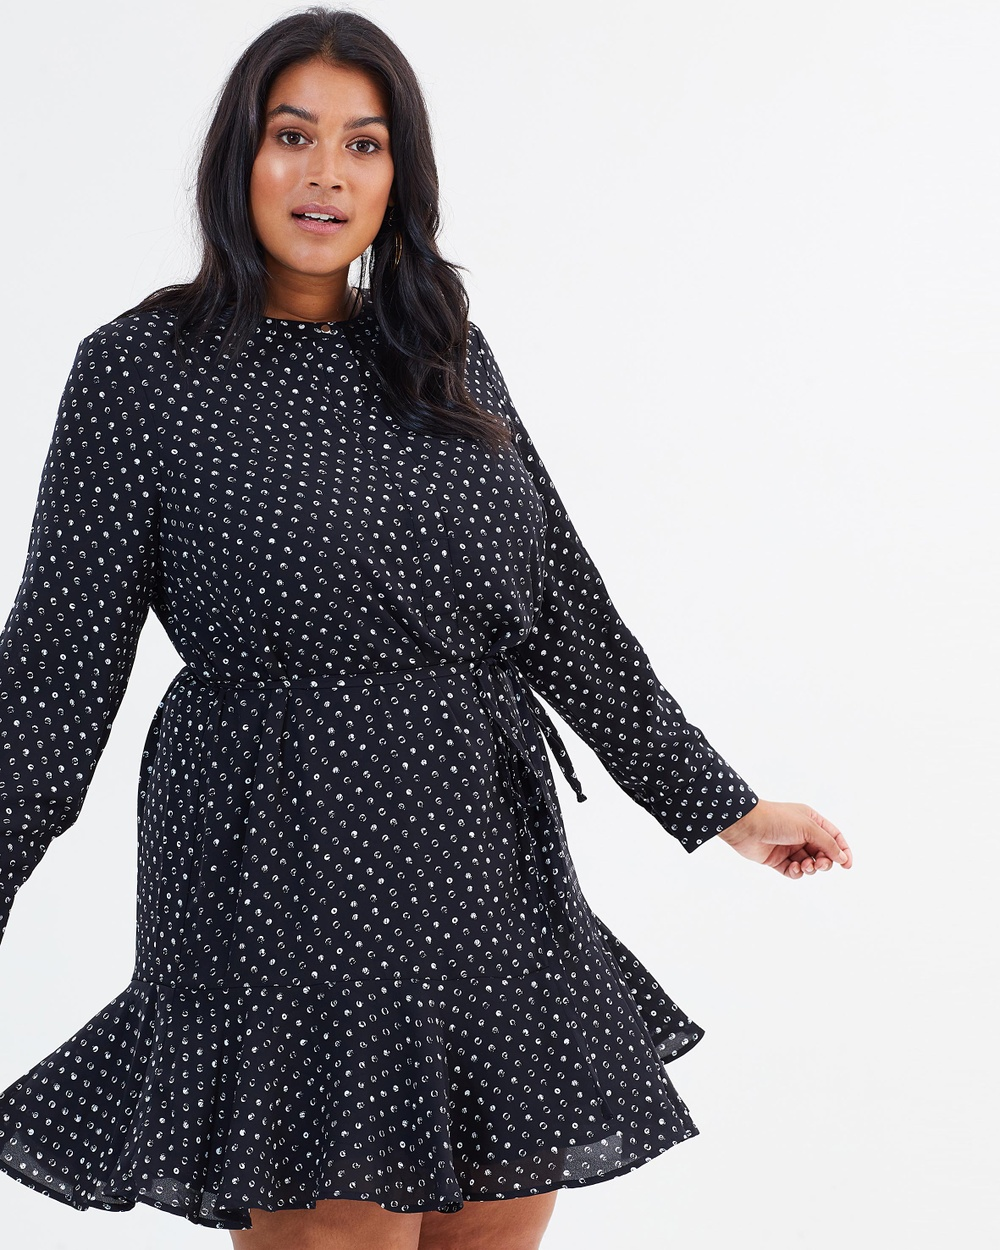 Rebel Wilson x Angels Long Sleeve Ruffle Dress with Hem Printed Dresses Mini Polka Dot Long Sleeve Ruffle Dress with Hem